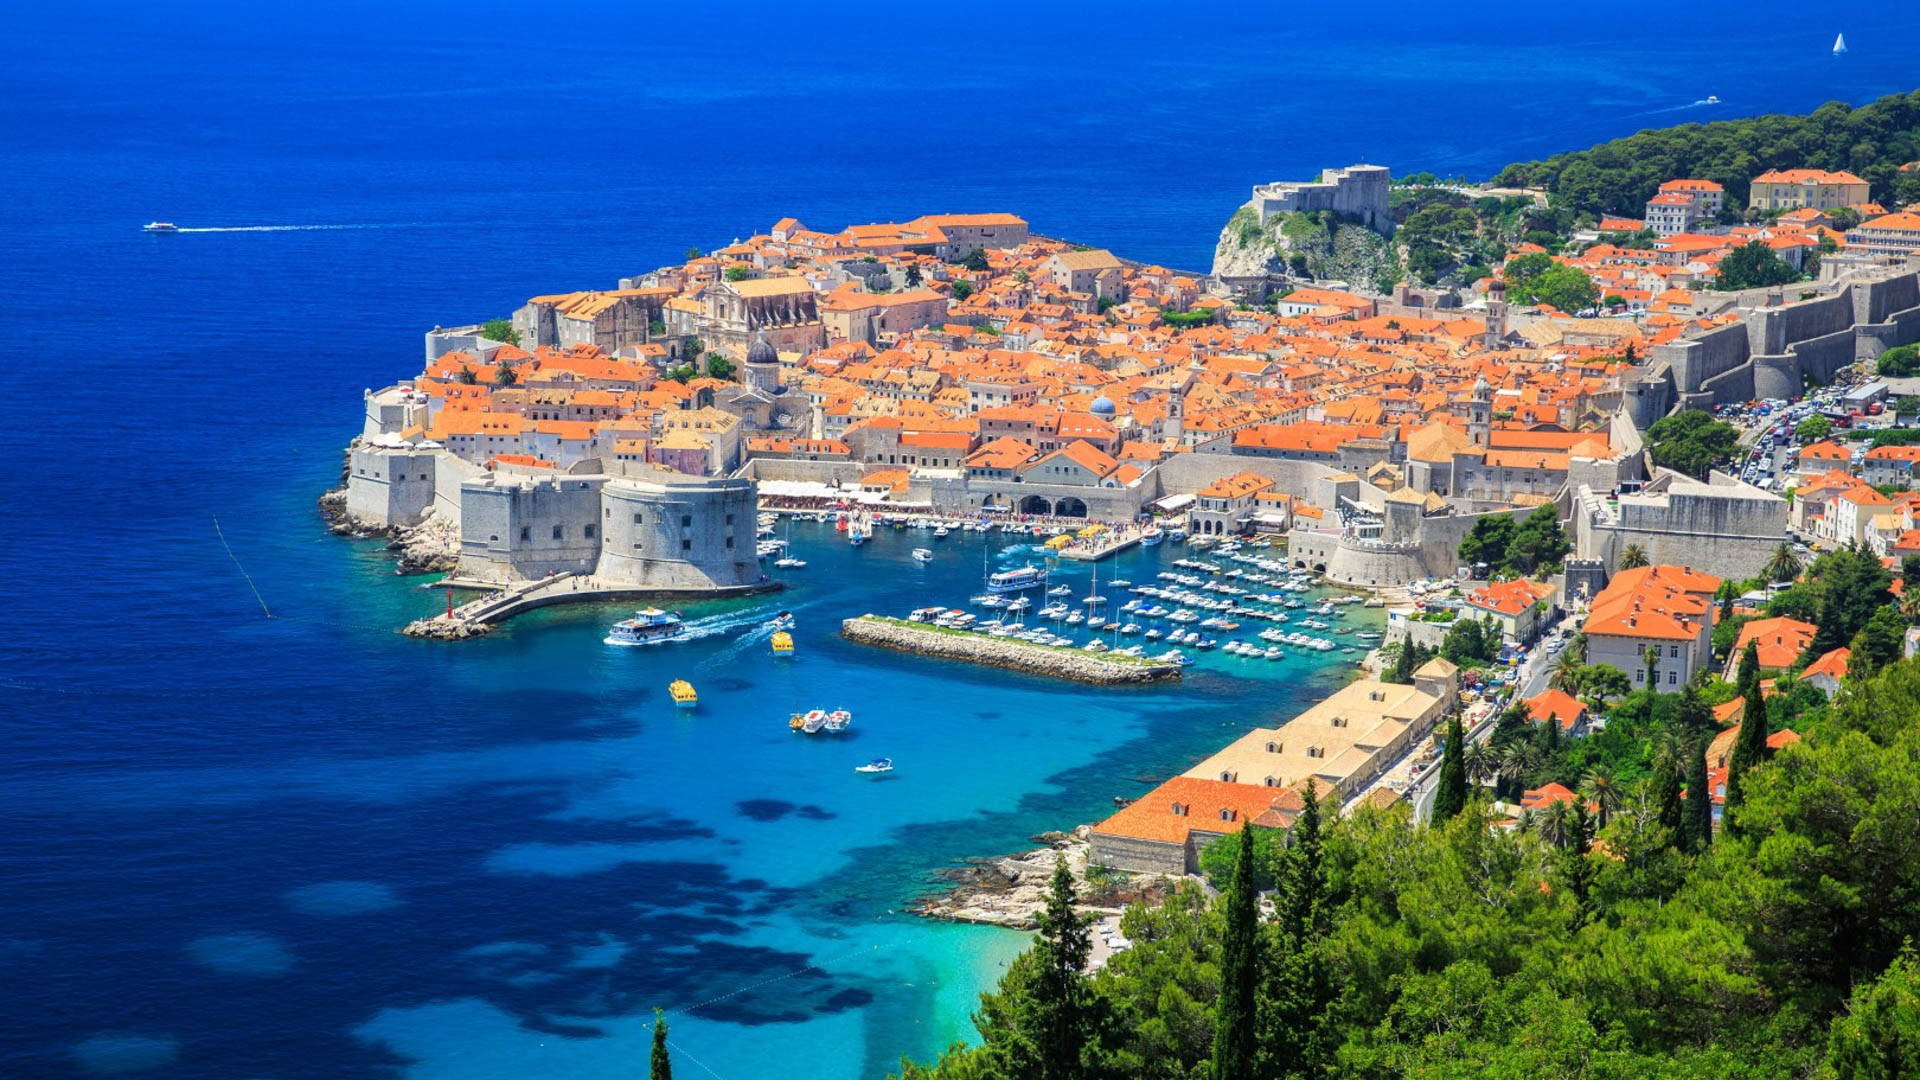 Dubrovnik - Adriatic Sea | Croatia Cruise Croatia Cruise